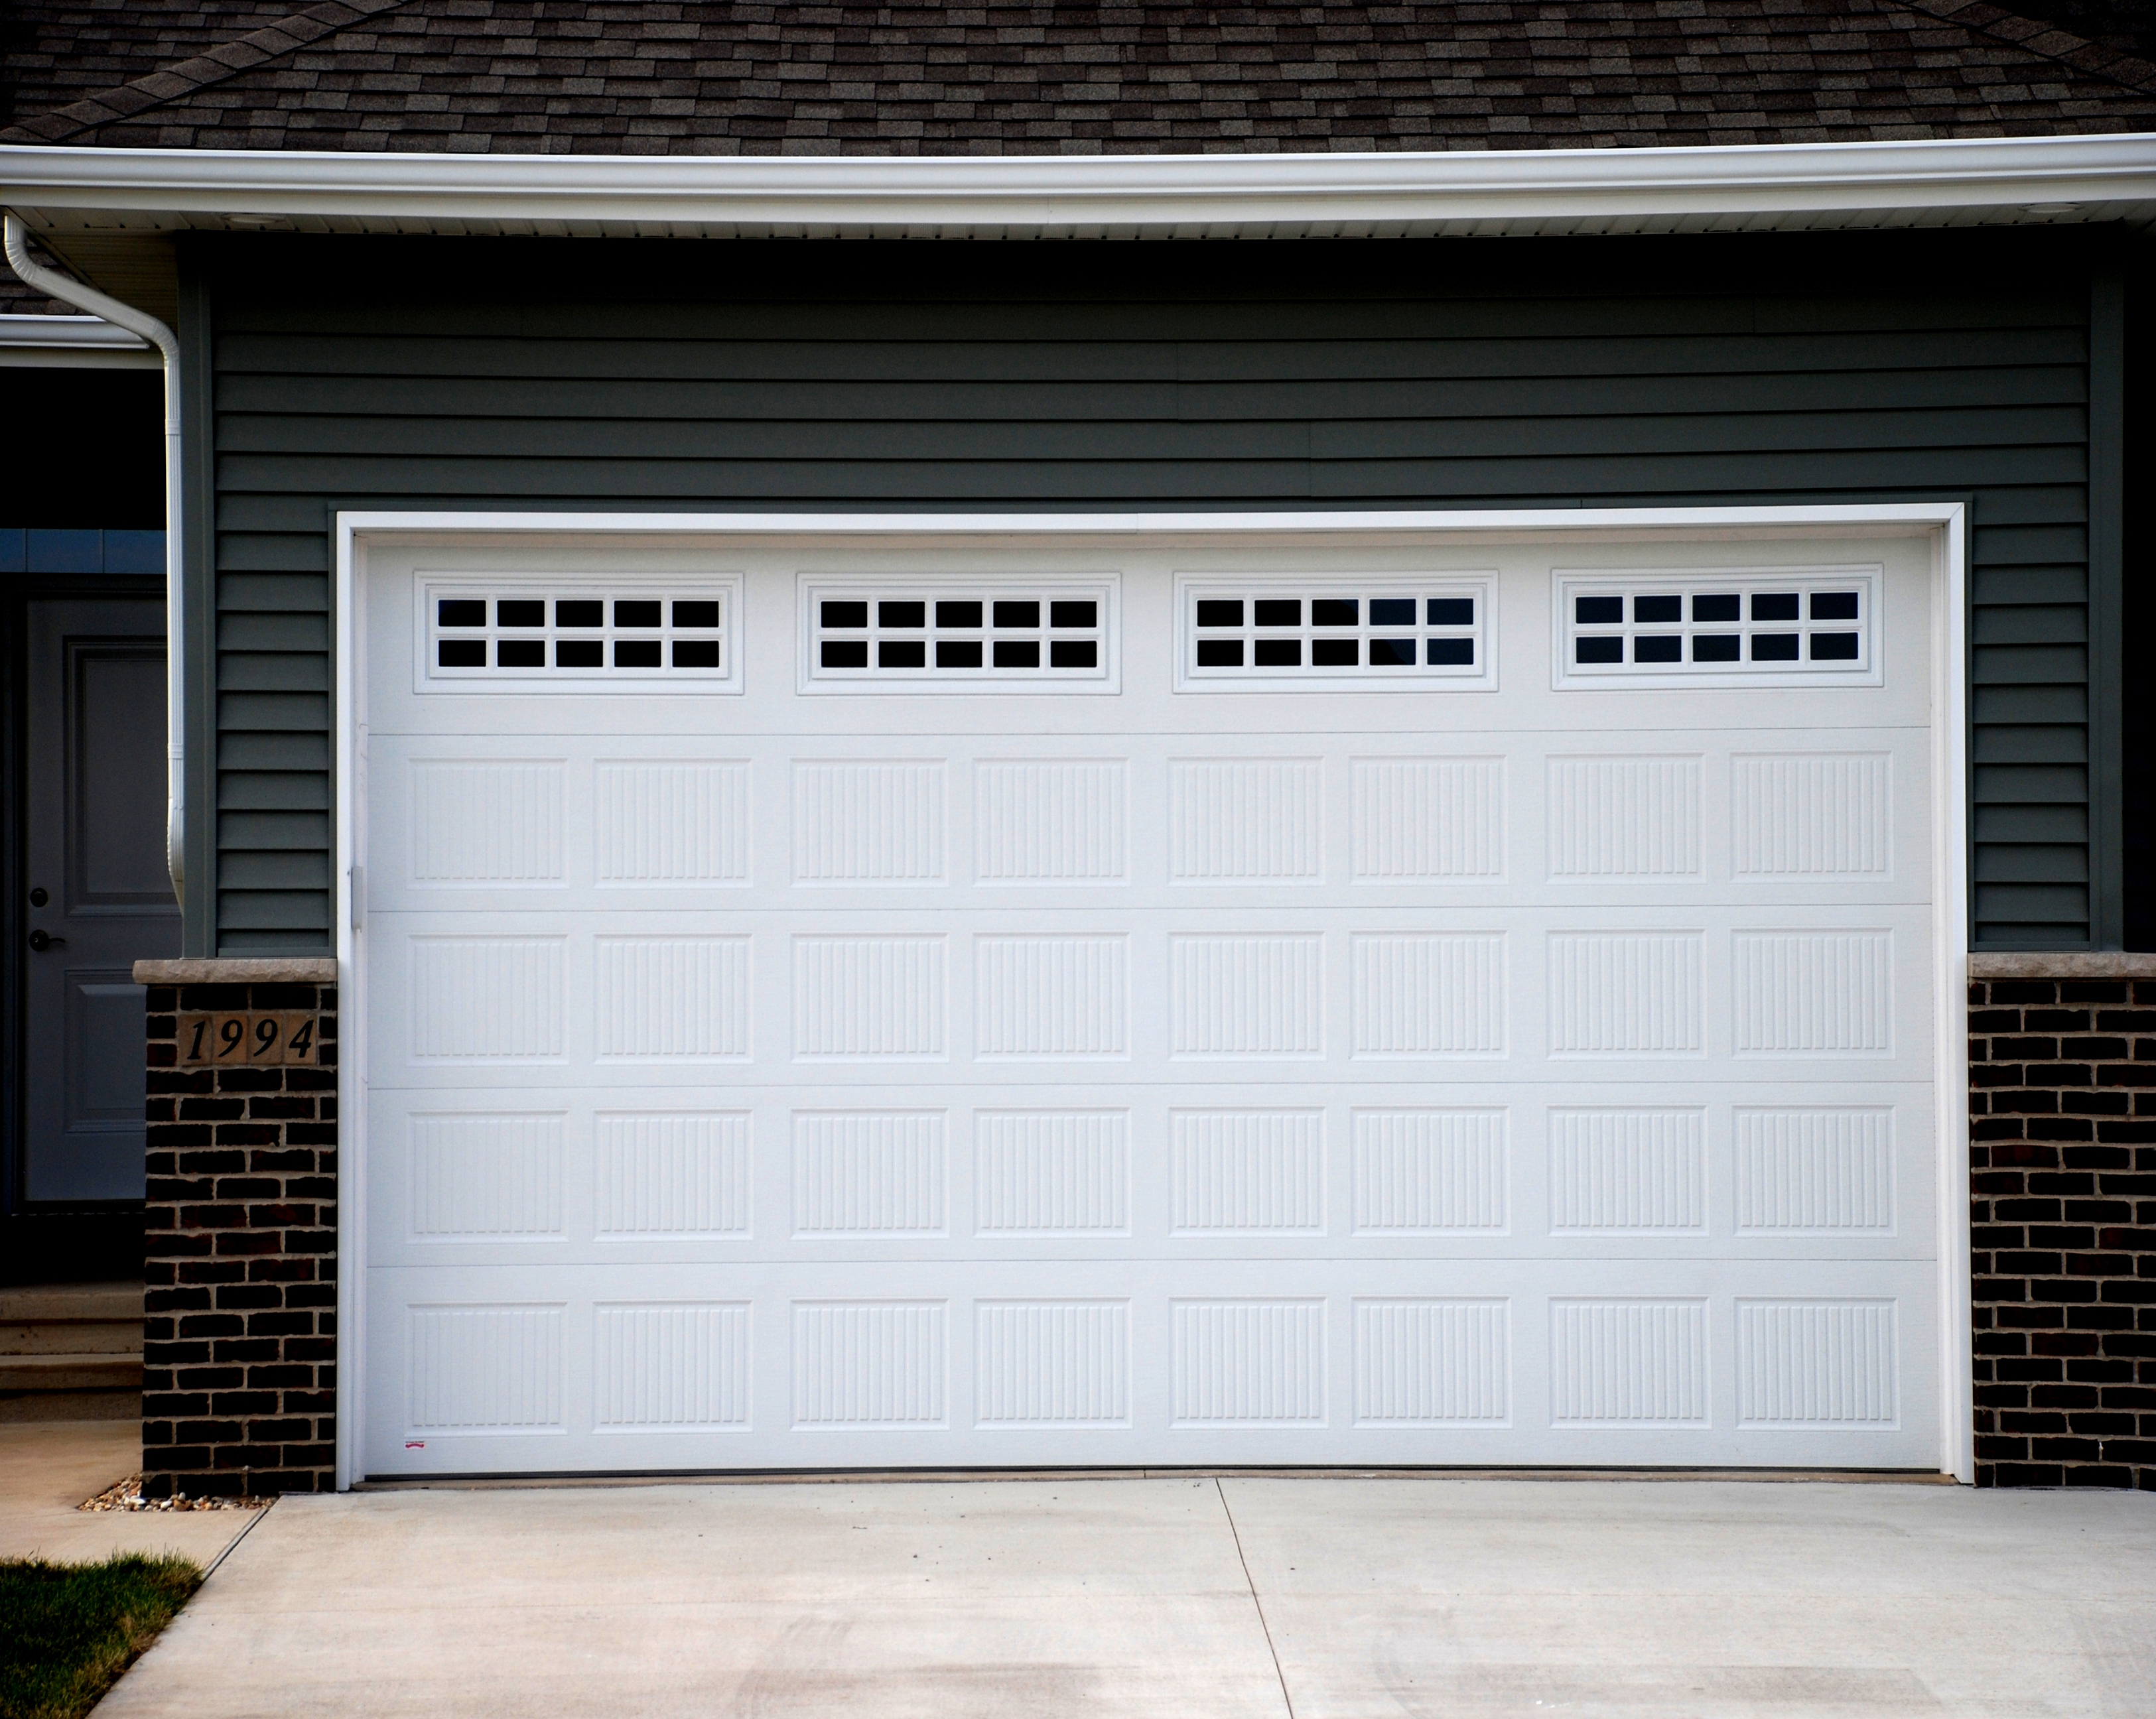 Luxury Polycarbonate Porte Puerta Seccional Wrought Iron 12x7 12x8 Automatic Insulated Sectional Garage Doors For Homes Buy Cheap Sectoral Garage Doors Manufacturer With Small Pedestrian Access Door Remote Control Electric Steel Material